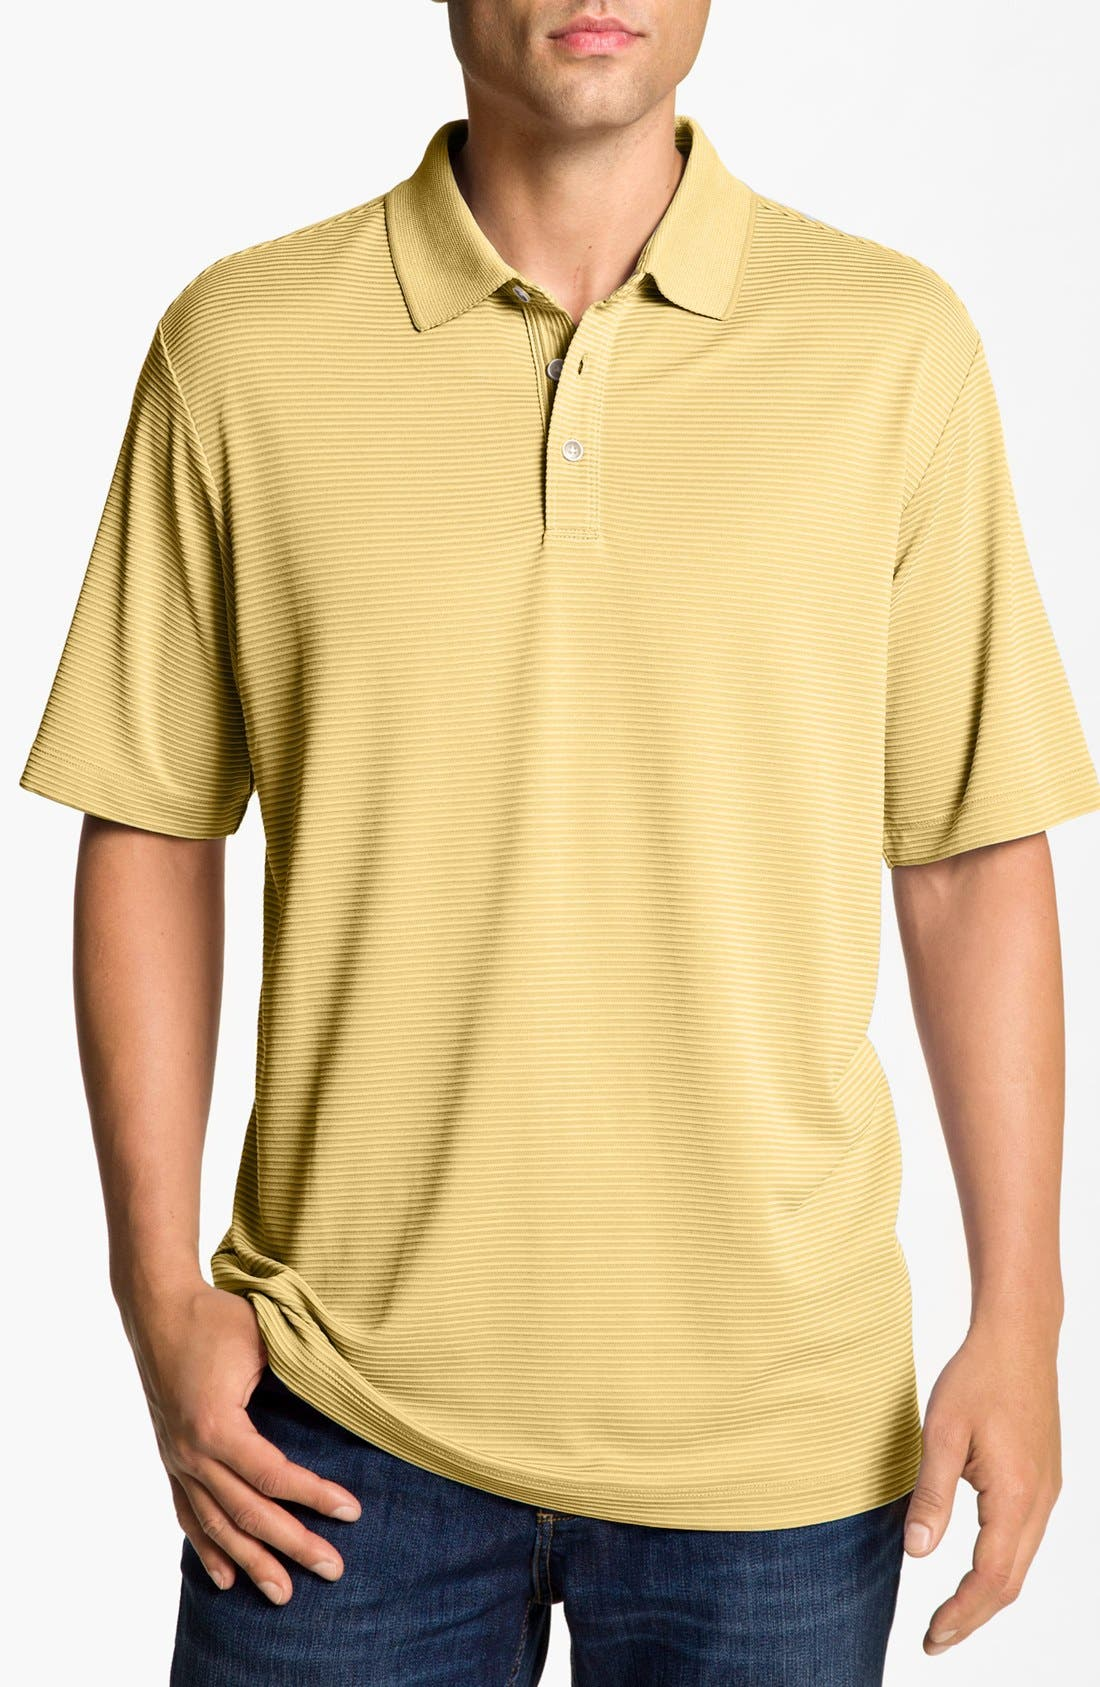 Alternate Image 1 Selected - Tommy Bahama 'Superfecta' Stripe Polo